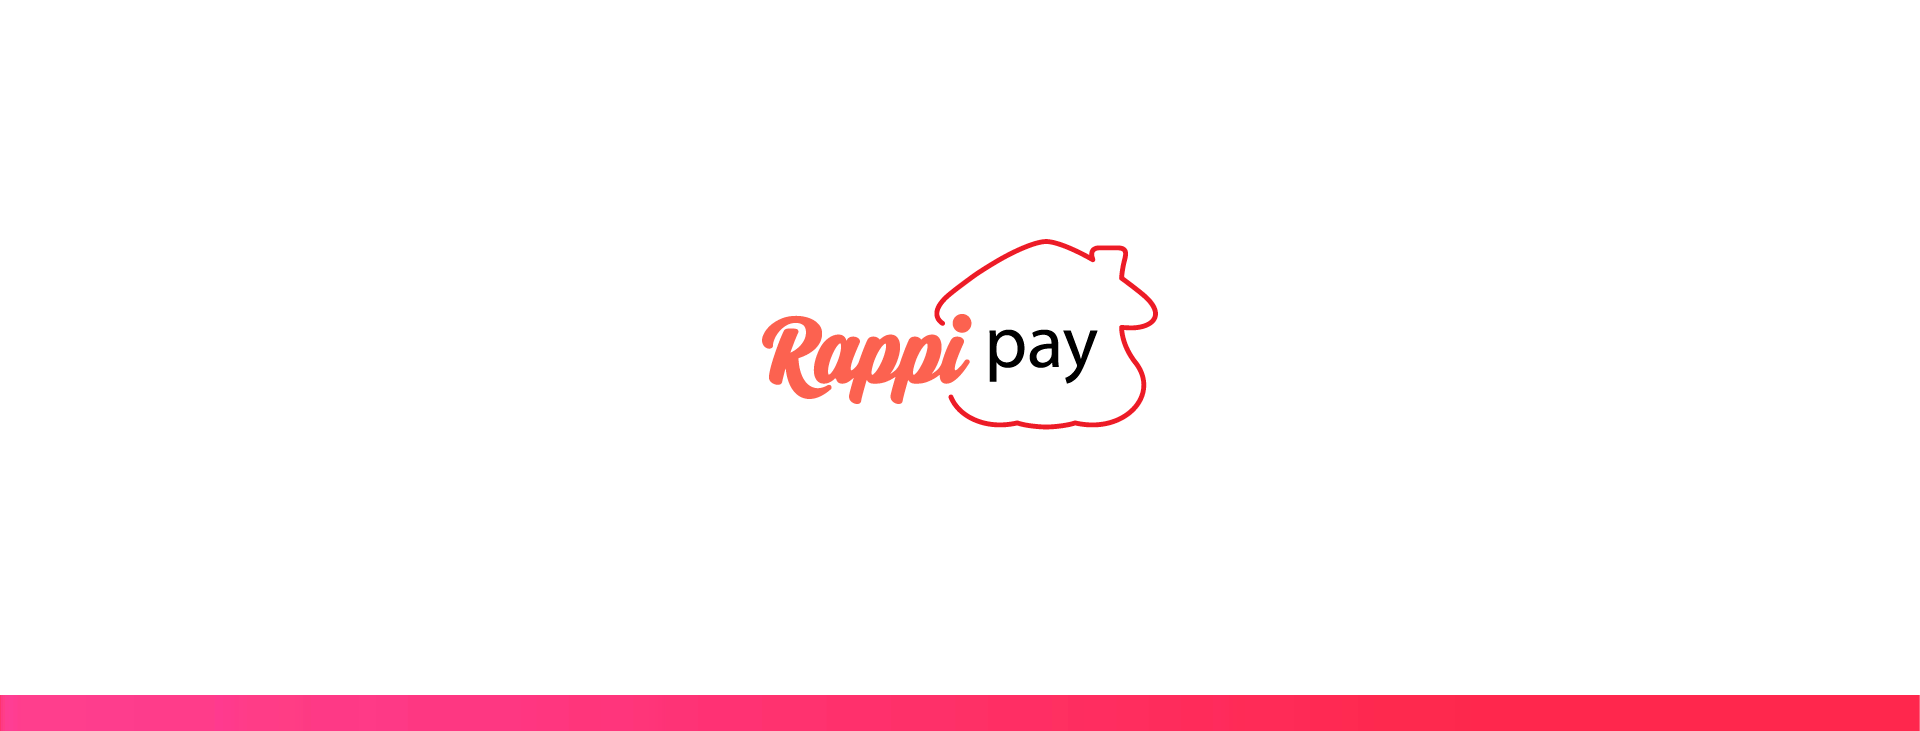 Rappi pay on Behance.